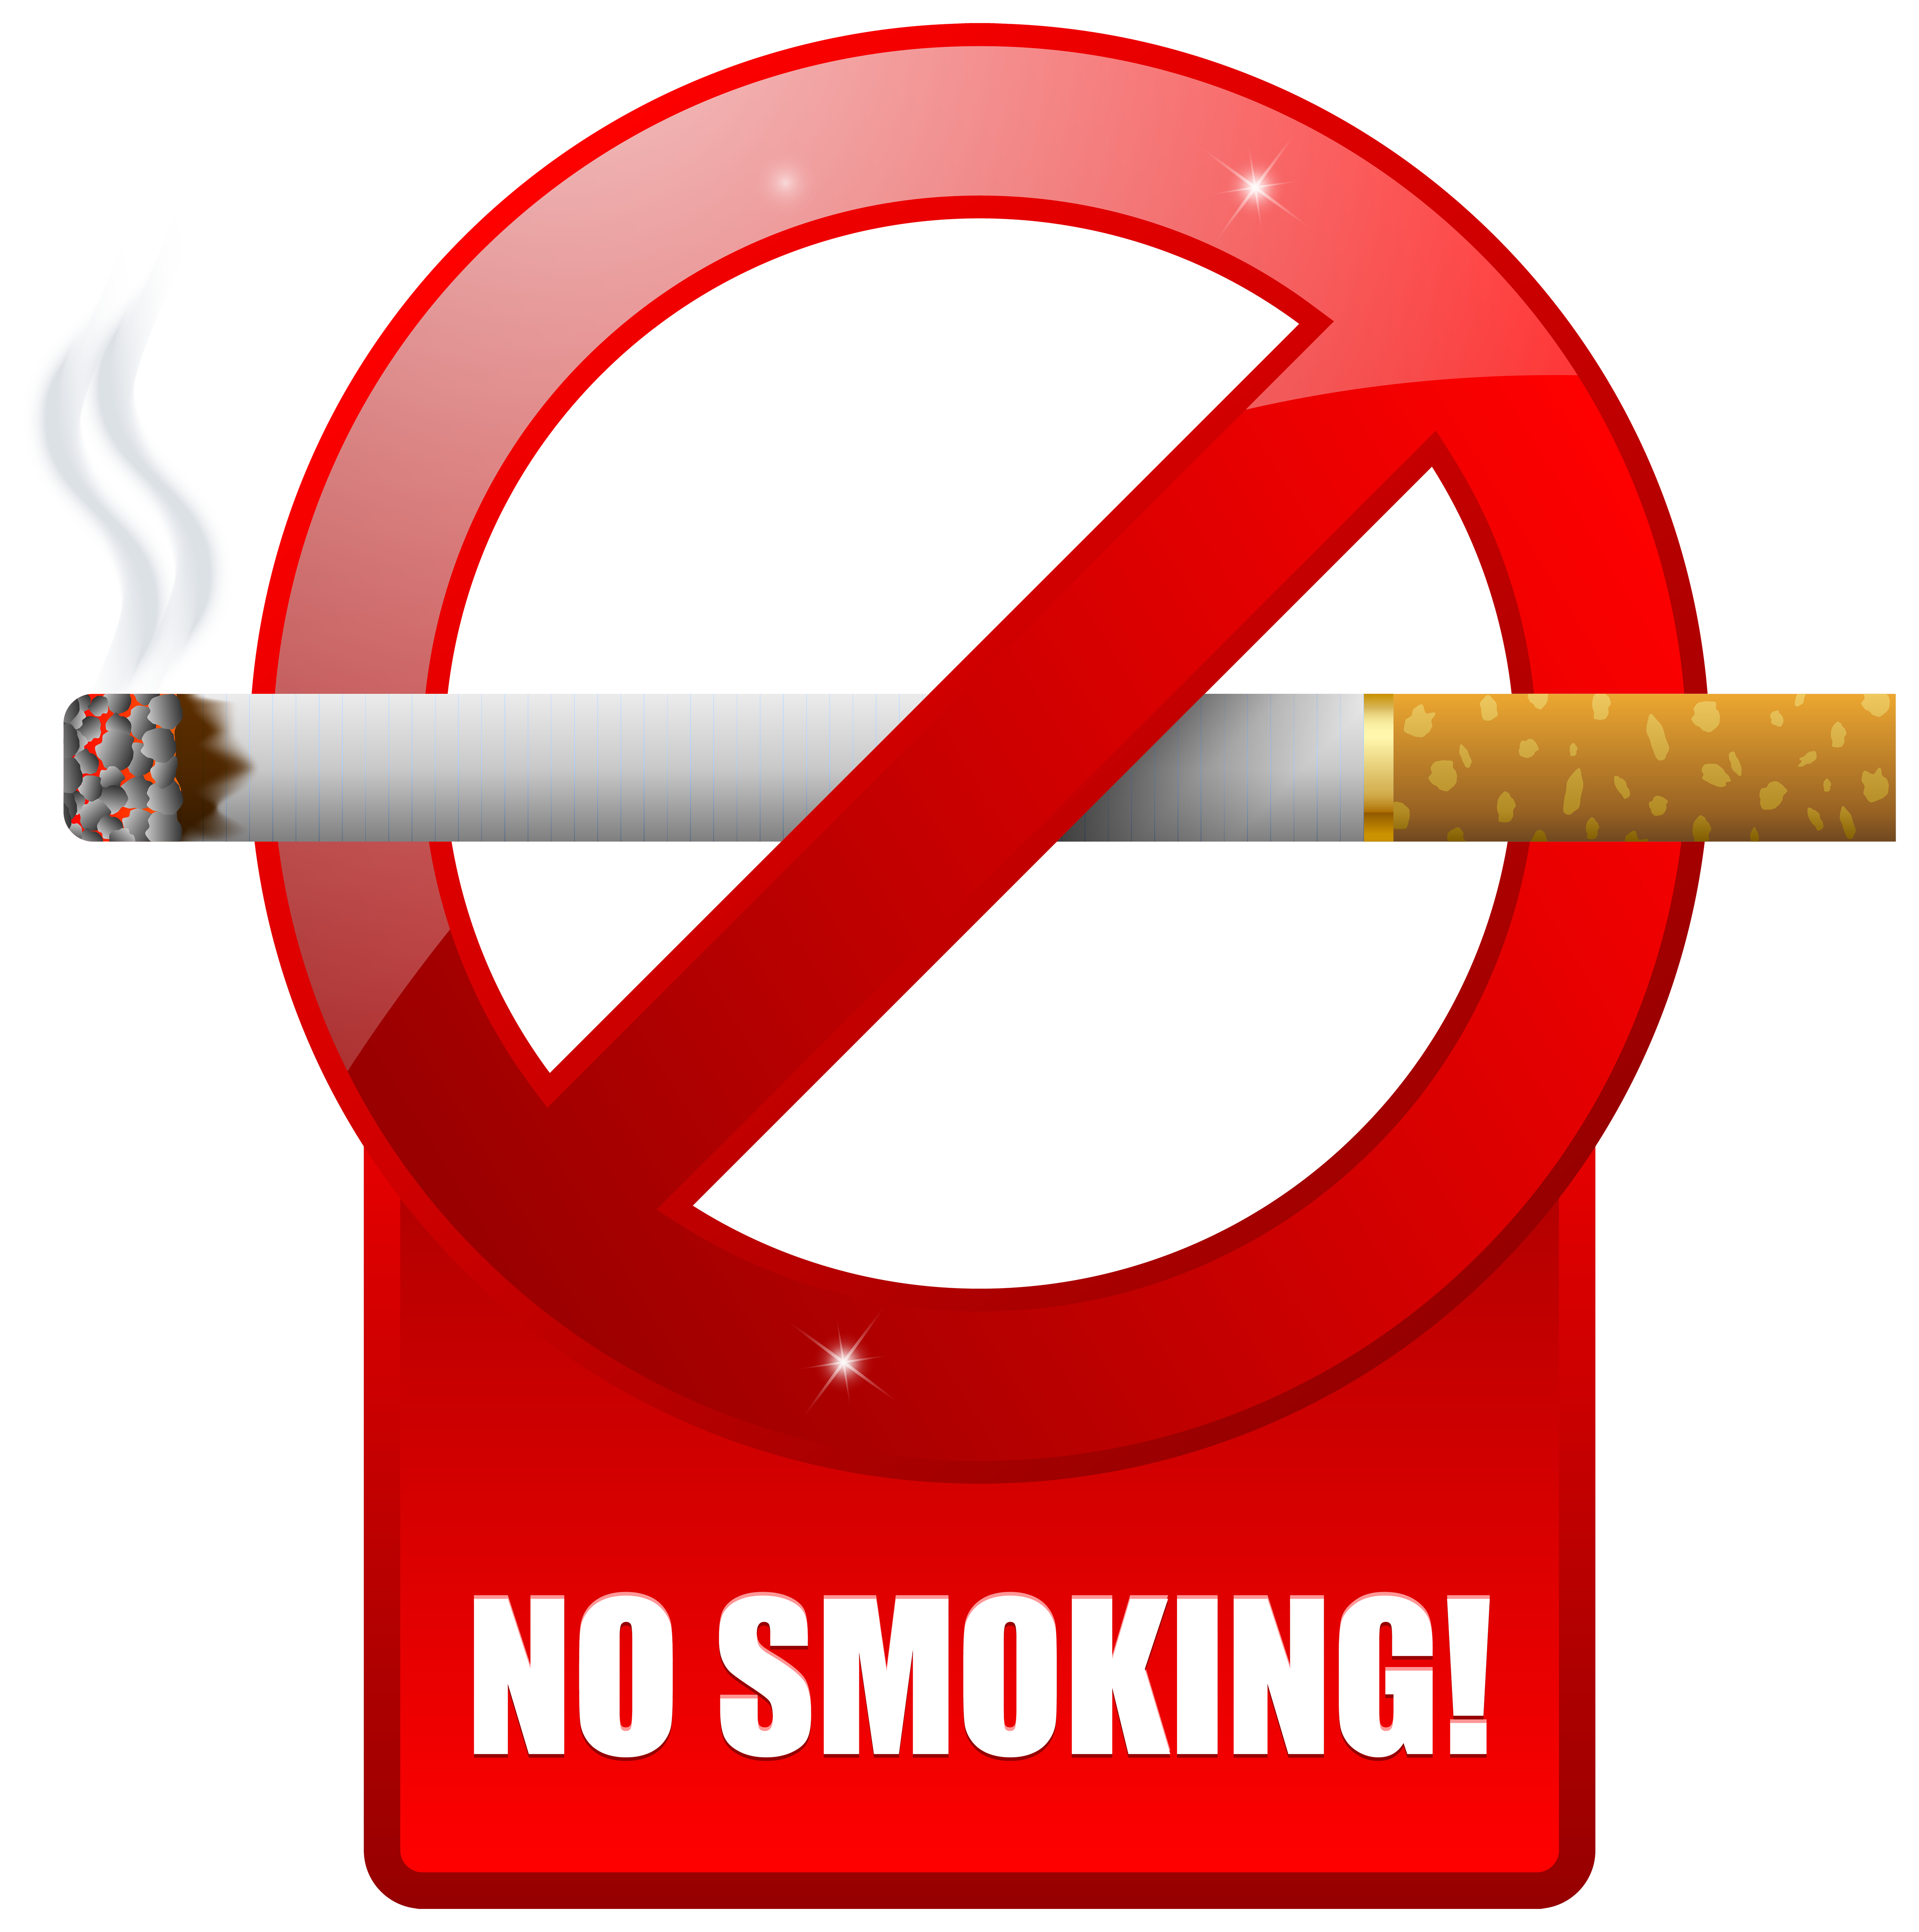 Cigarette warning labels png. Collection of no